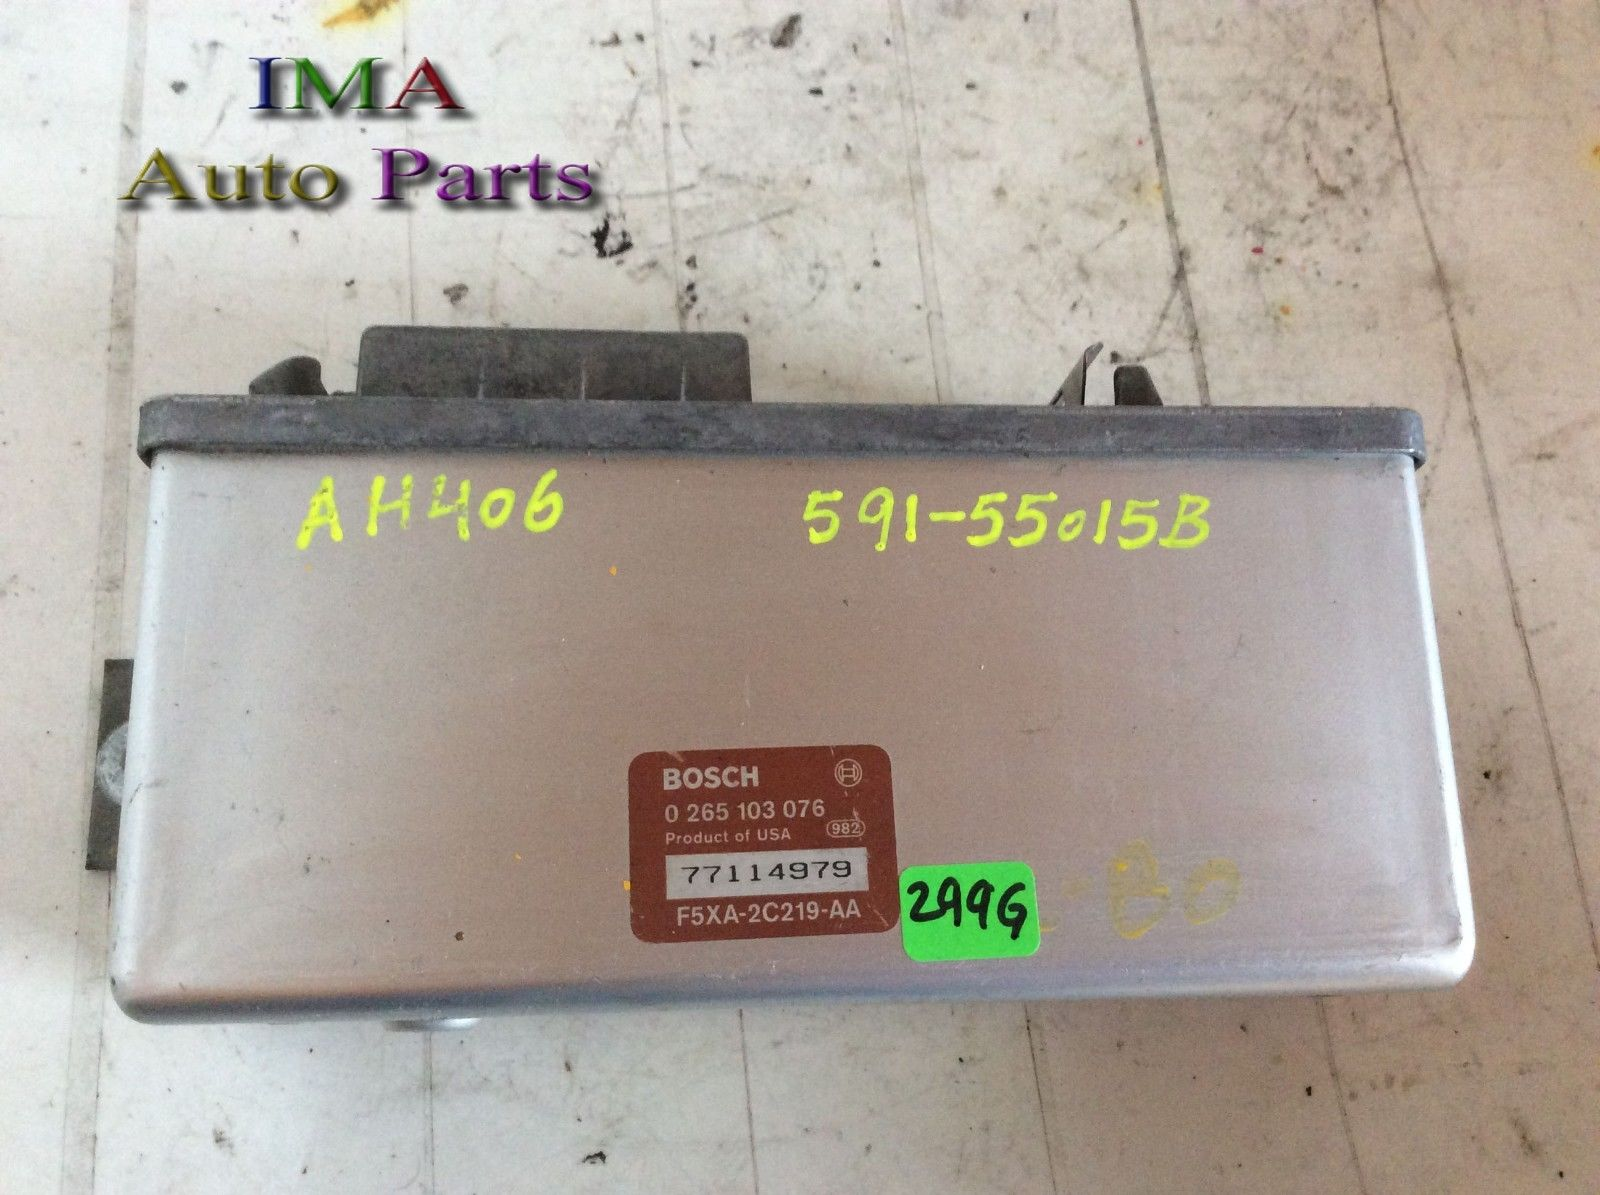 1998 MERCURY VILLAGER ABS CONTROL MODULE GENUINE F5XA-2C219-AA 0 265 103 076